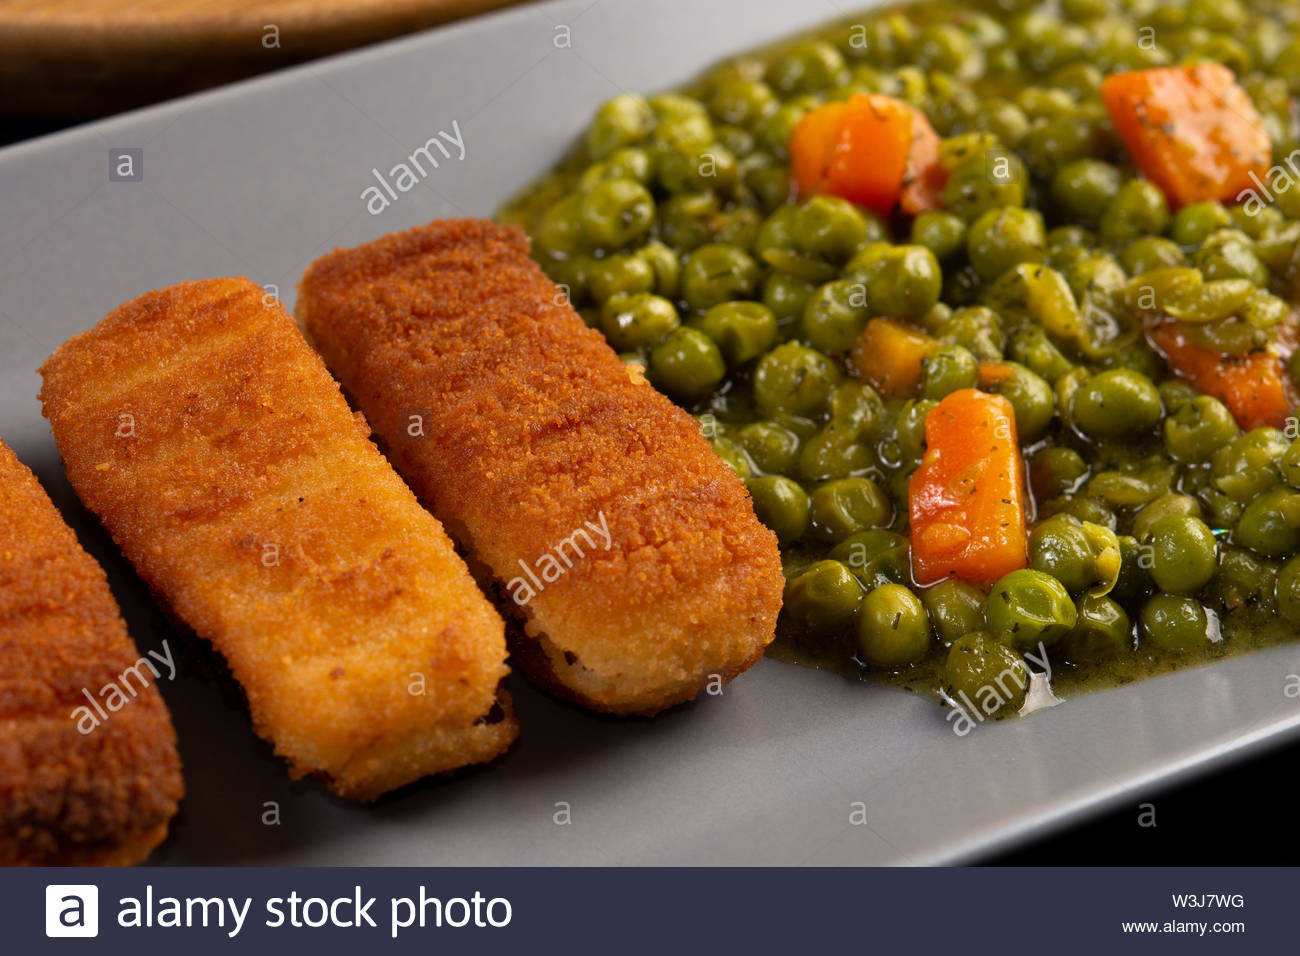 Fried Fish Sticks served with cooked green peas on the plate. - Stock Image